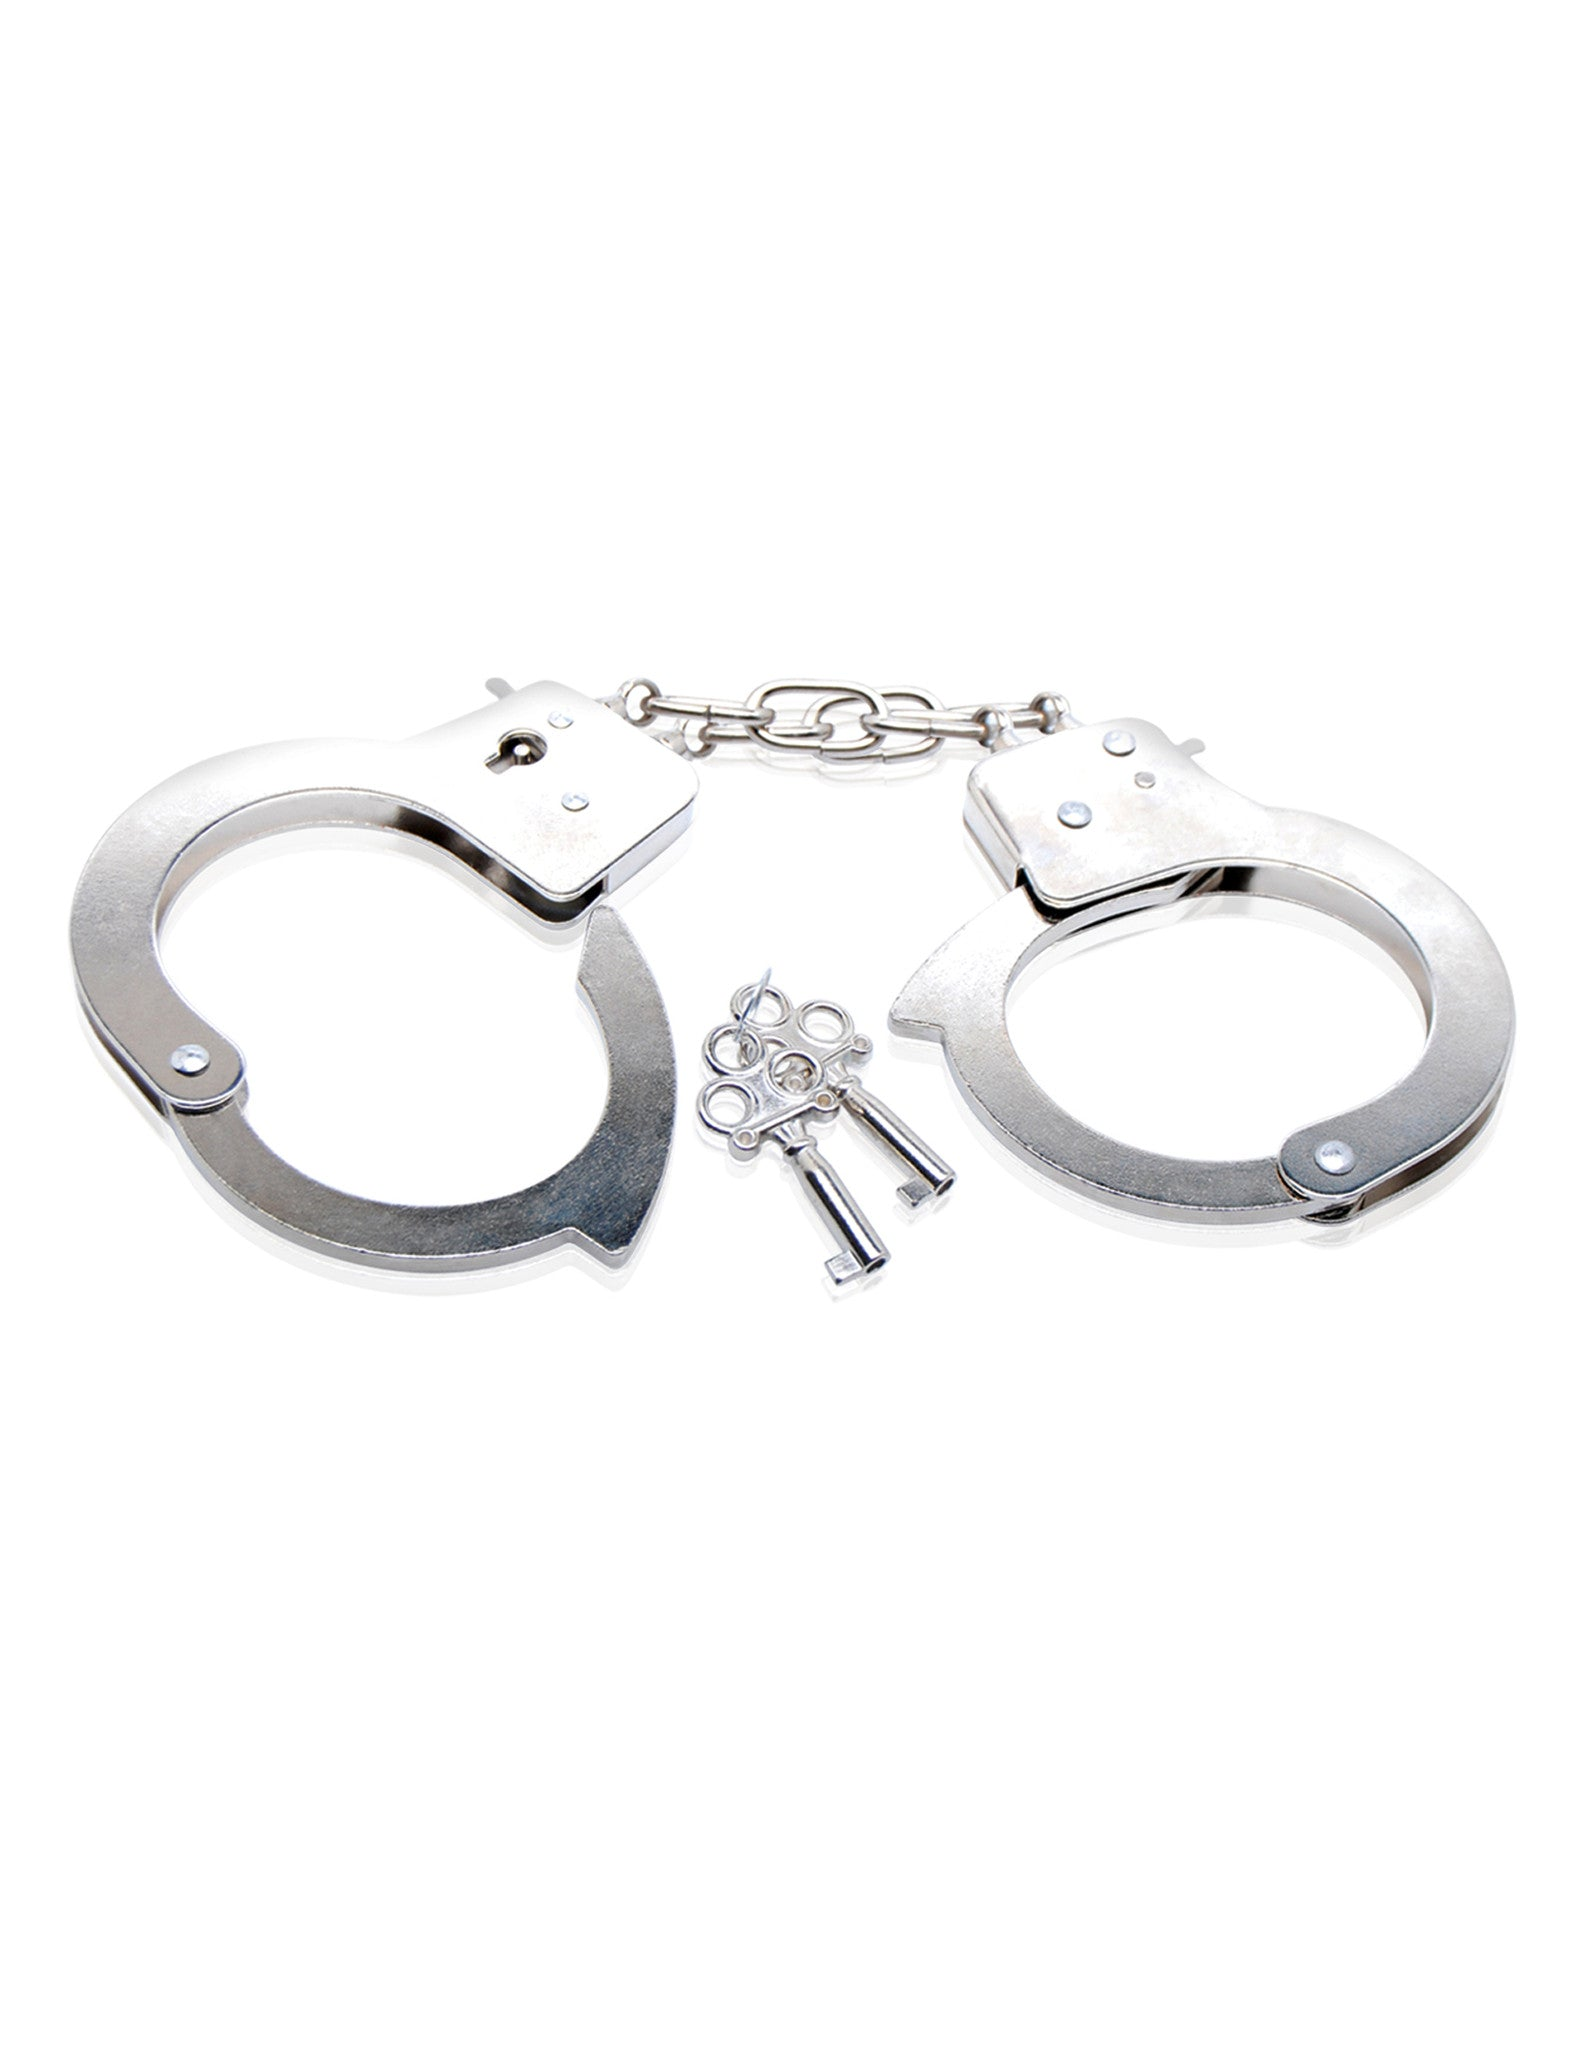 Beginner's Metal Handcuffs